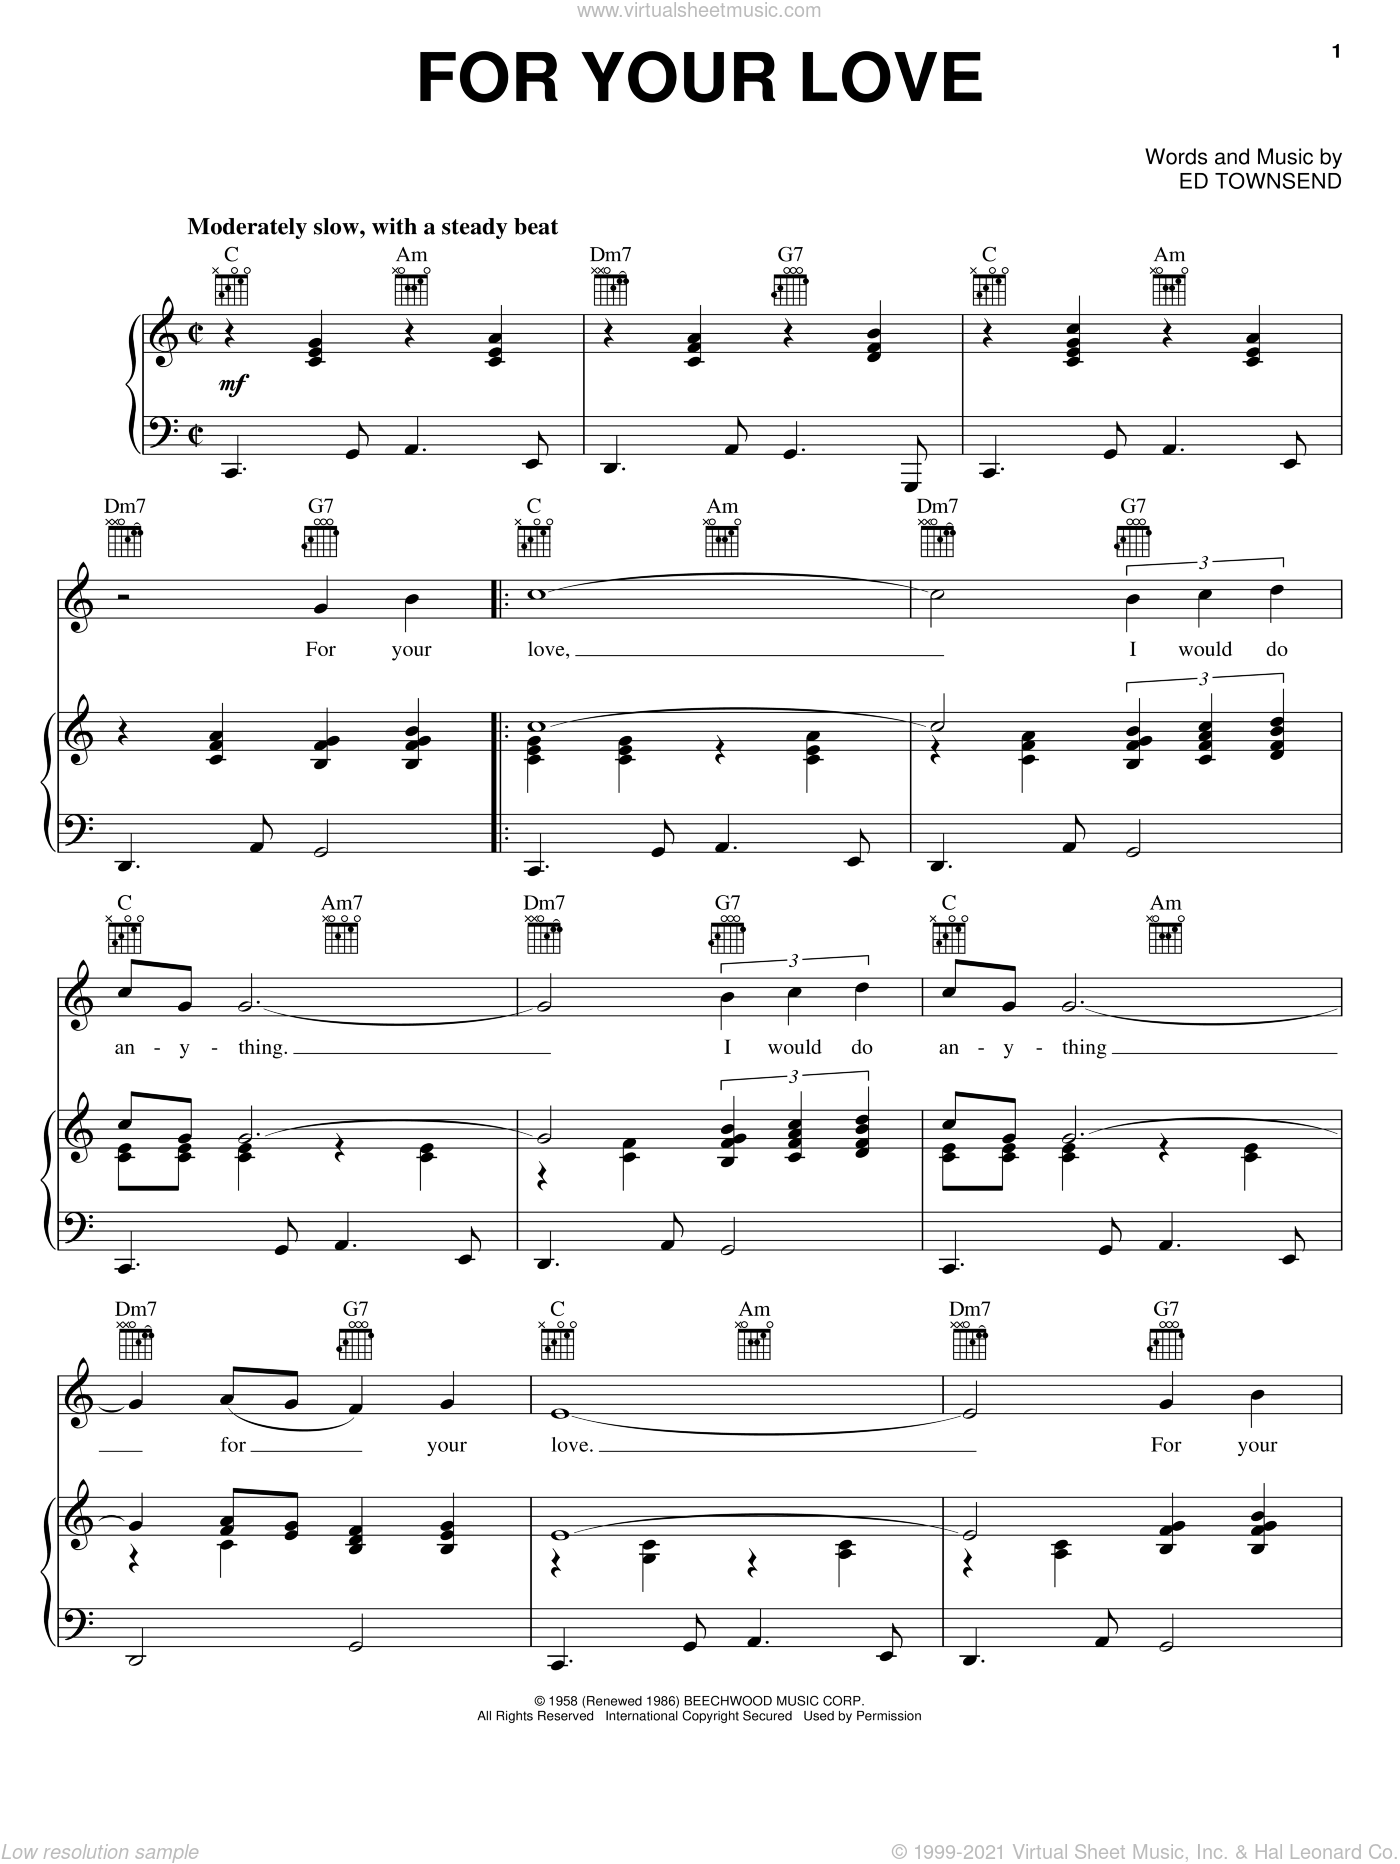 For Your Love sheet music for voice, piano or guitar by Ed Townsend